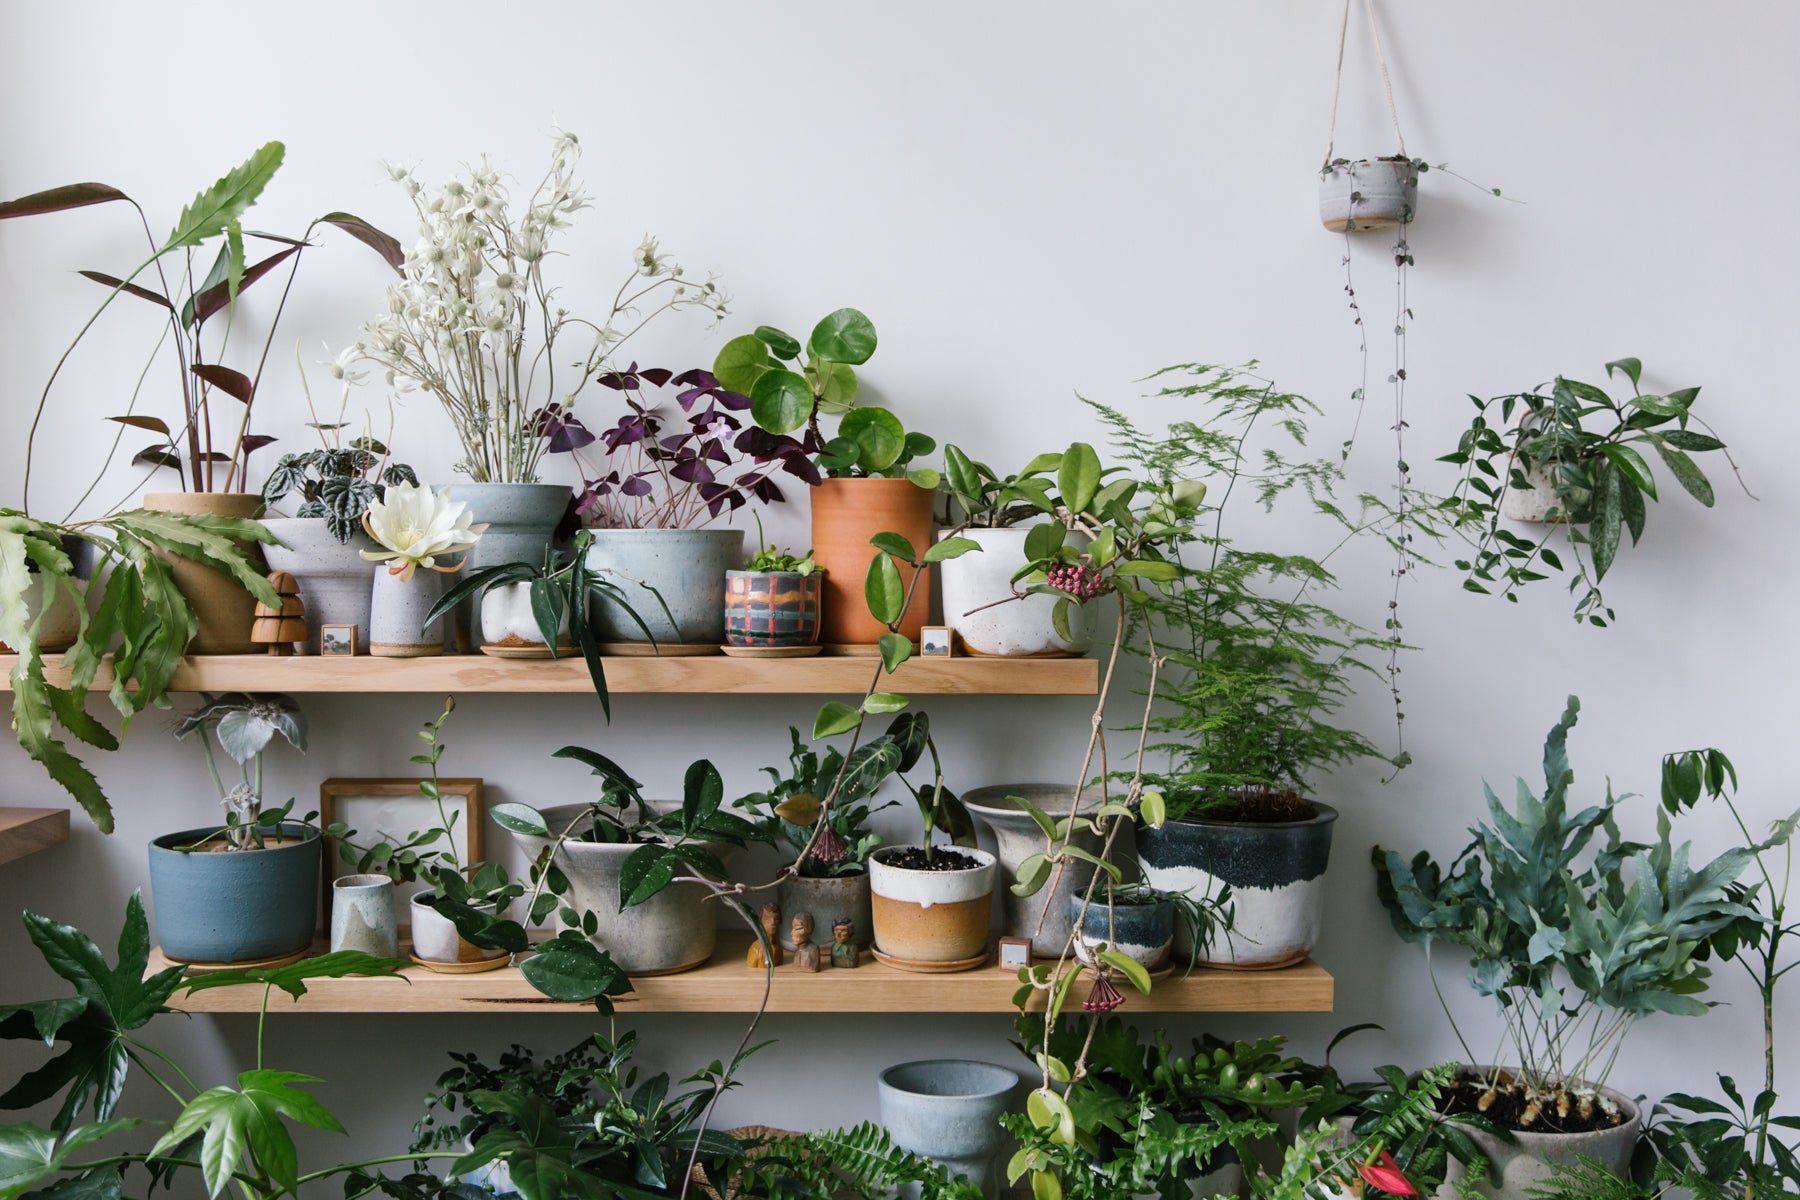 Leaf and Thread Melbourne studio full of handmade ceramic pots for indoor plants